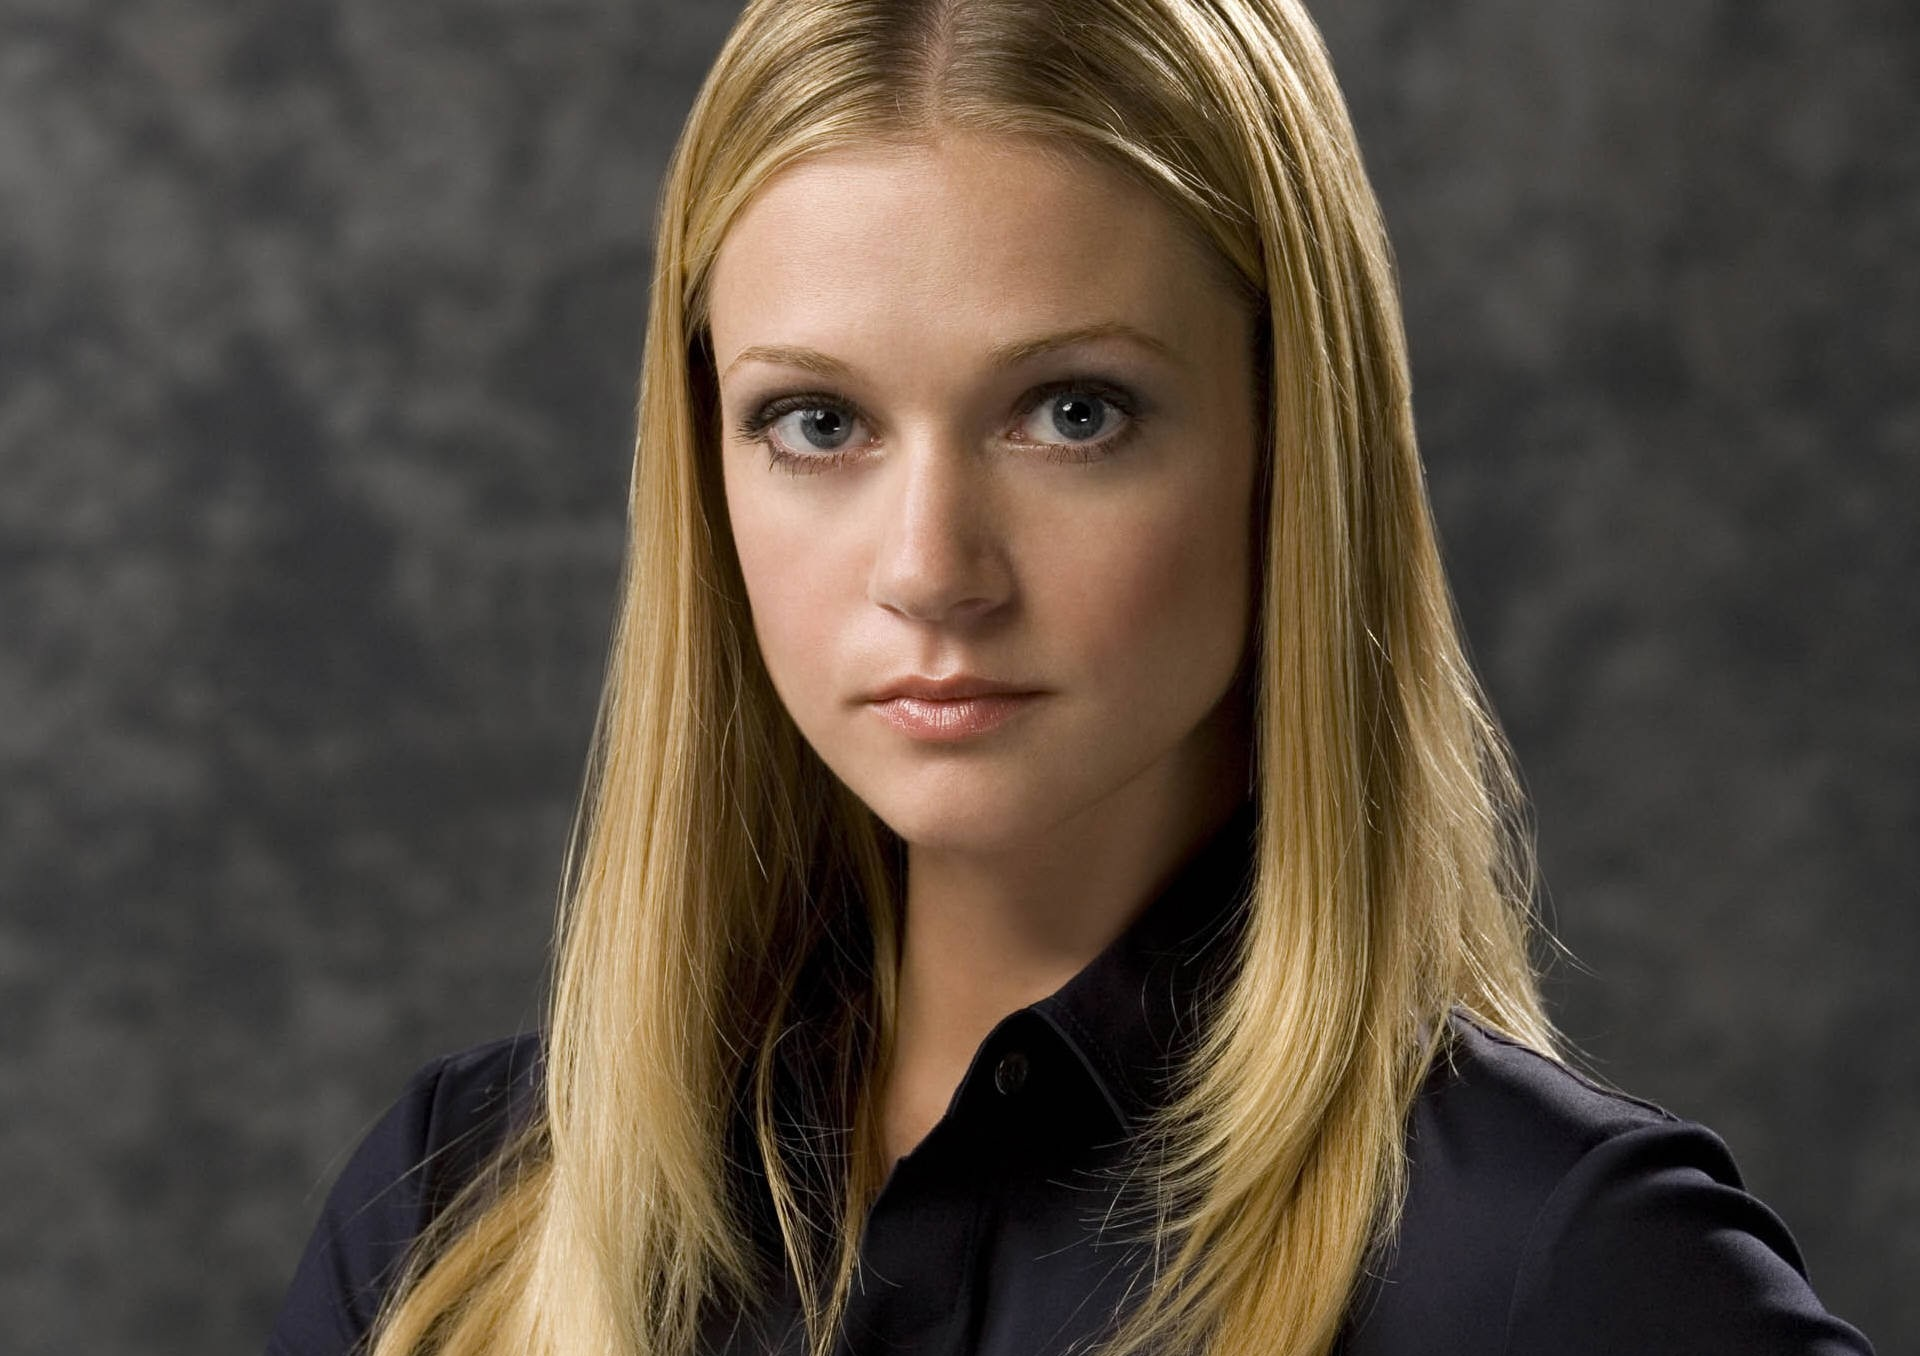 1920x1356 - A.J. Cook Wallpapers 7